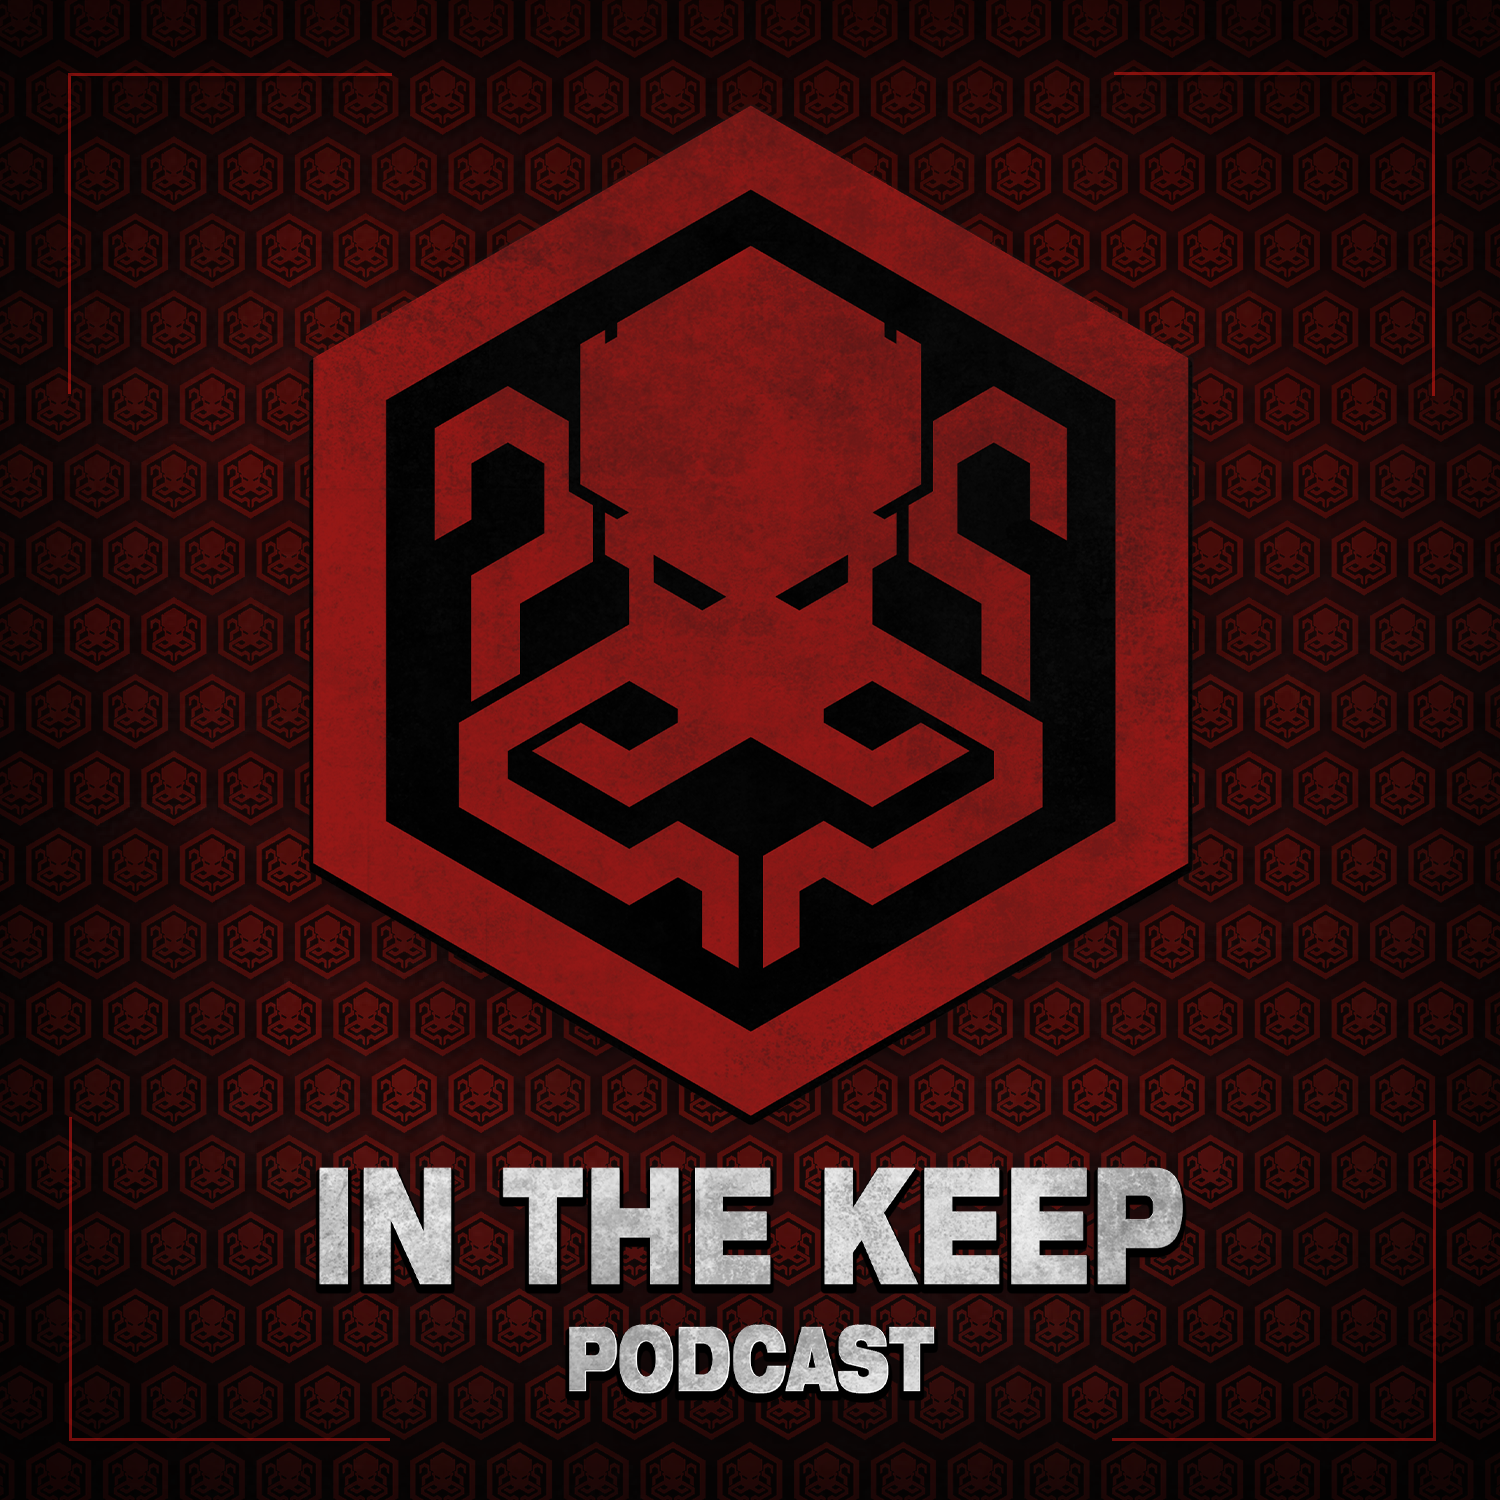 In The Keep Podcast – #73 StarlightSkyes (Dread XP)